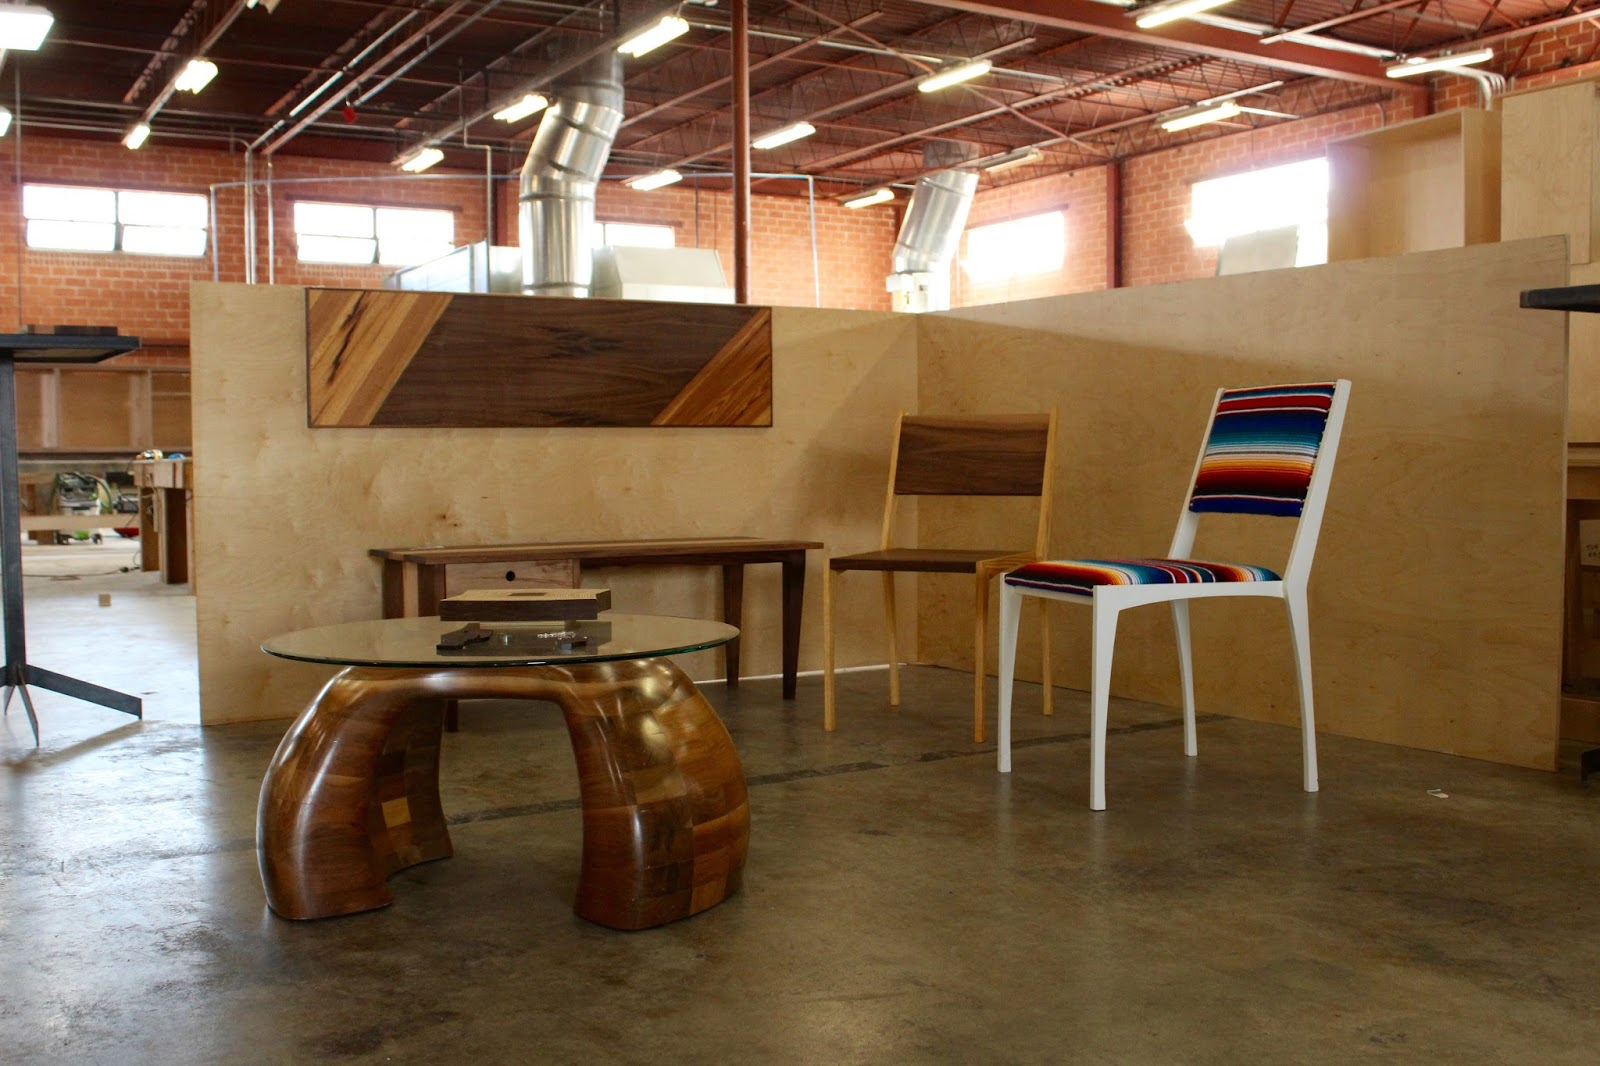 Artists are free to use the warehouse in their free time to make their own creative pieces.